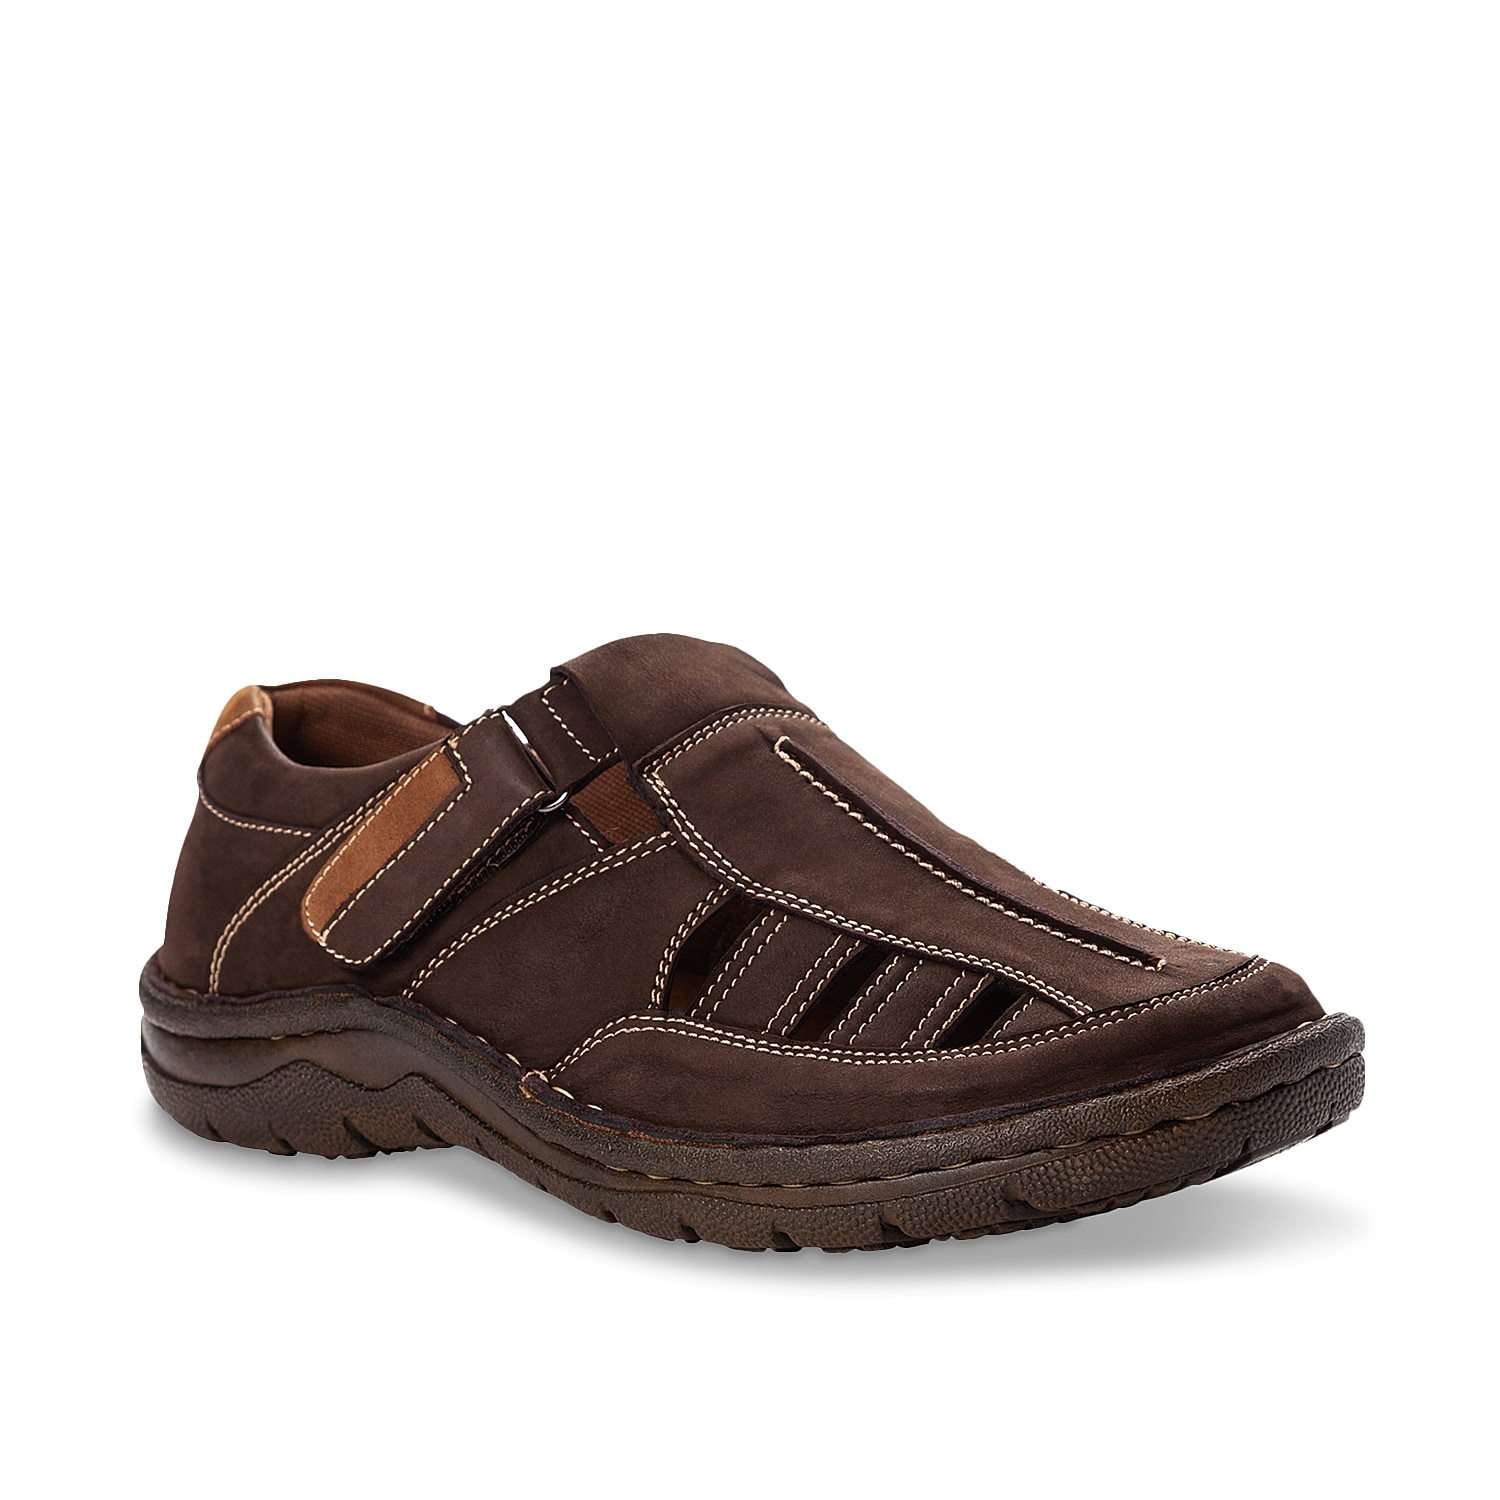 Enjoy summer days in comfort with the Jack Huarache sandal by Propet. Showcasing classic fisherman style for excellent ventilation, its adjustable instep strap ensures a customized fit. The removable foam footbed cradles your feet and a durable outsole offers reliable traction.